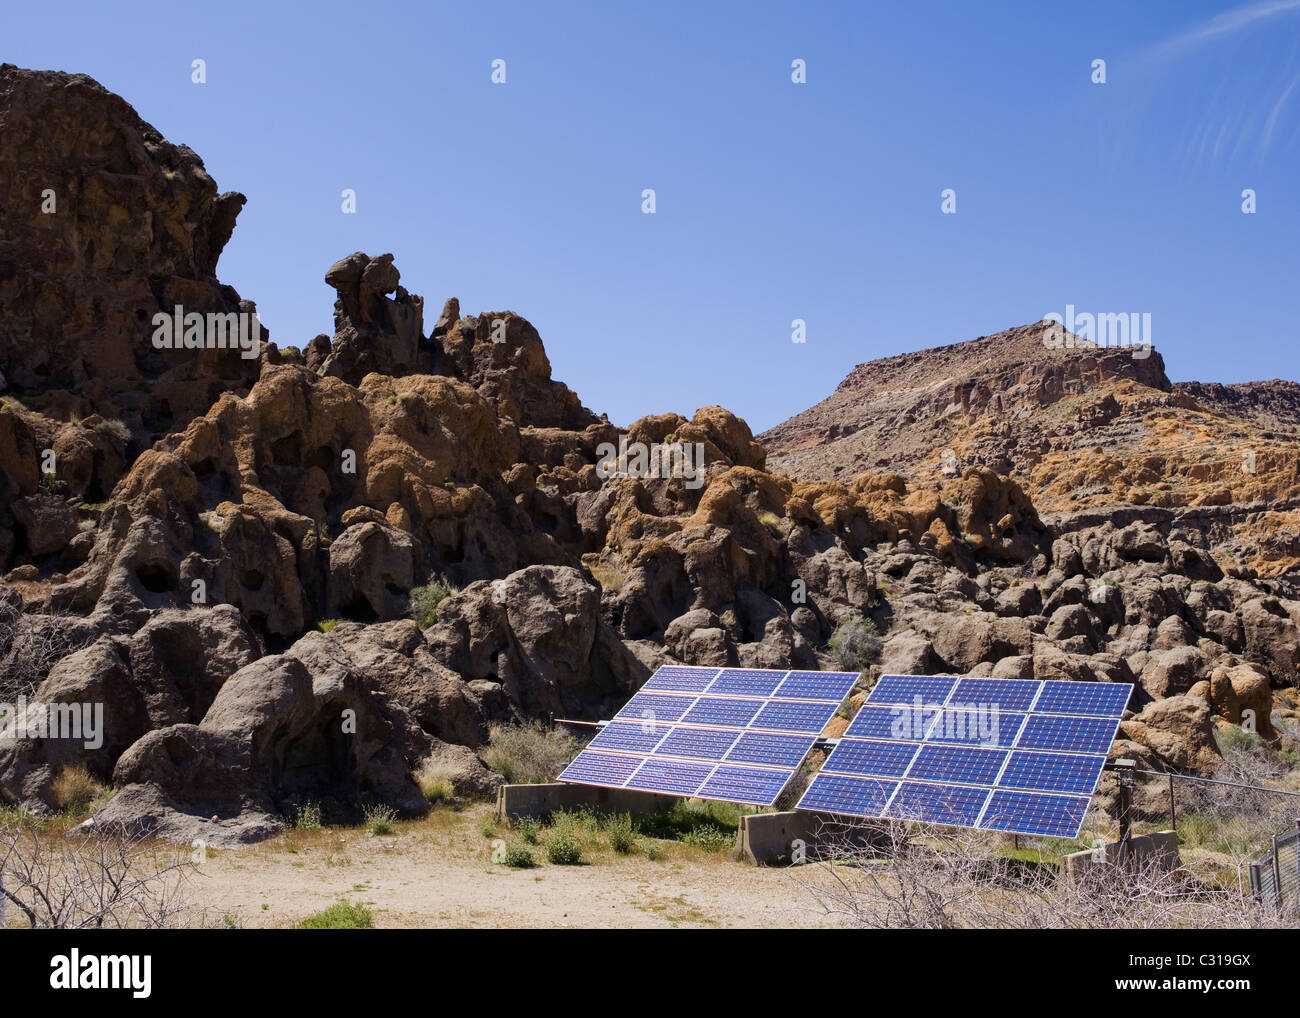 Solar panel against rocky landscape and blue sky - California USA - Stock Image